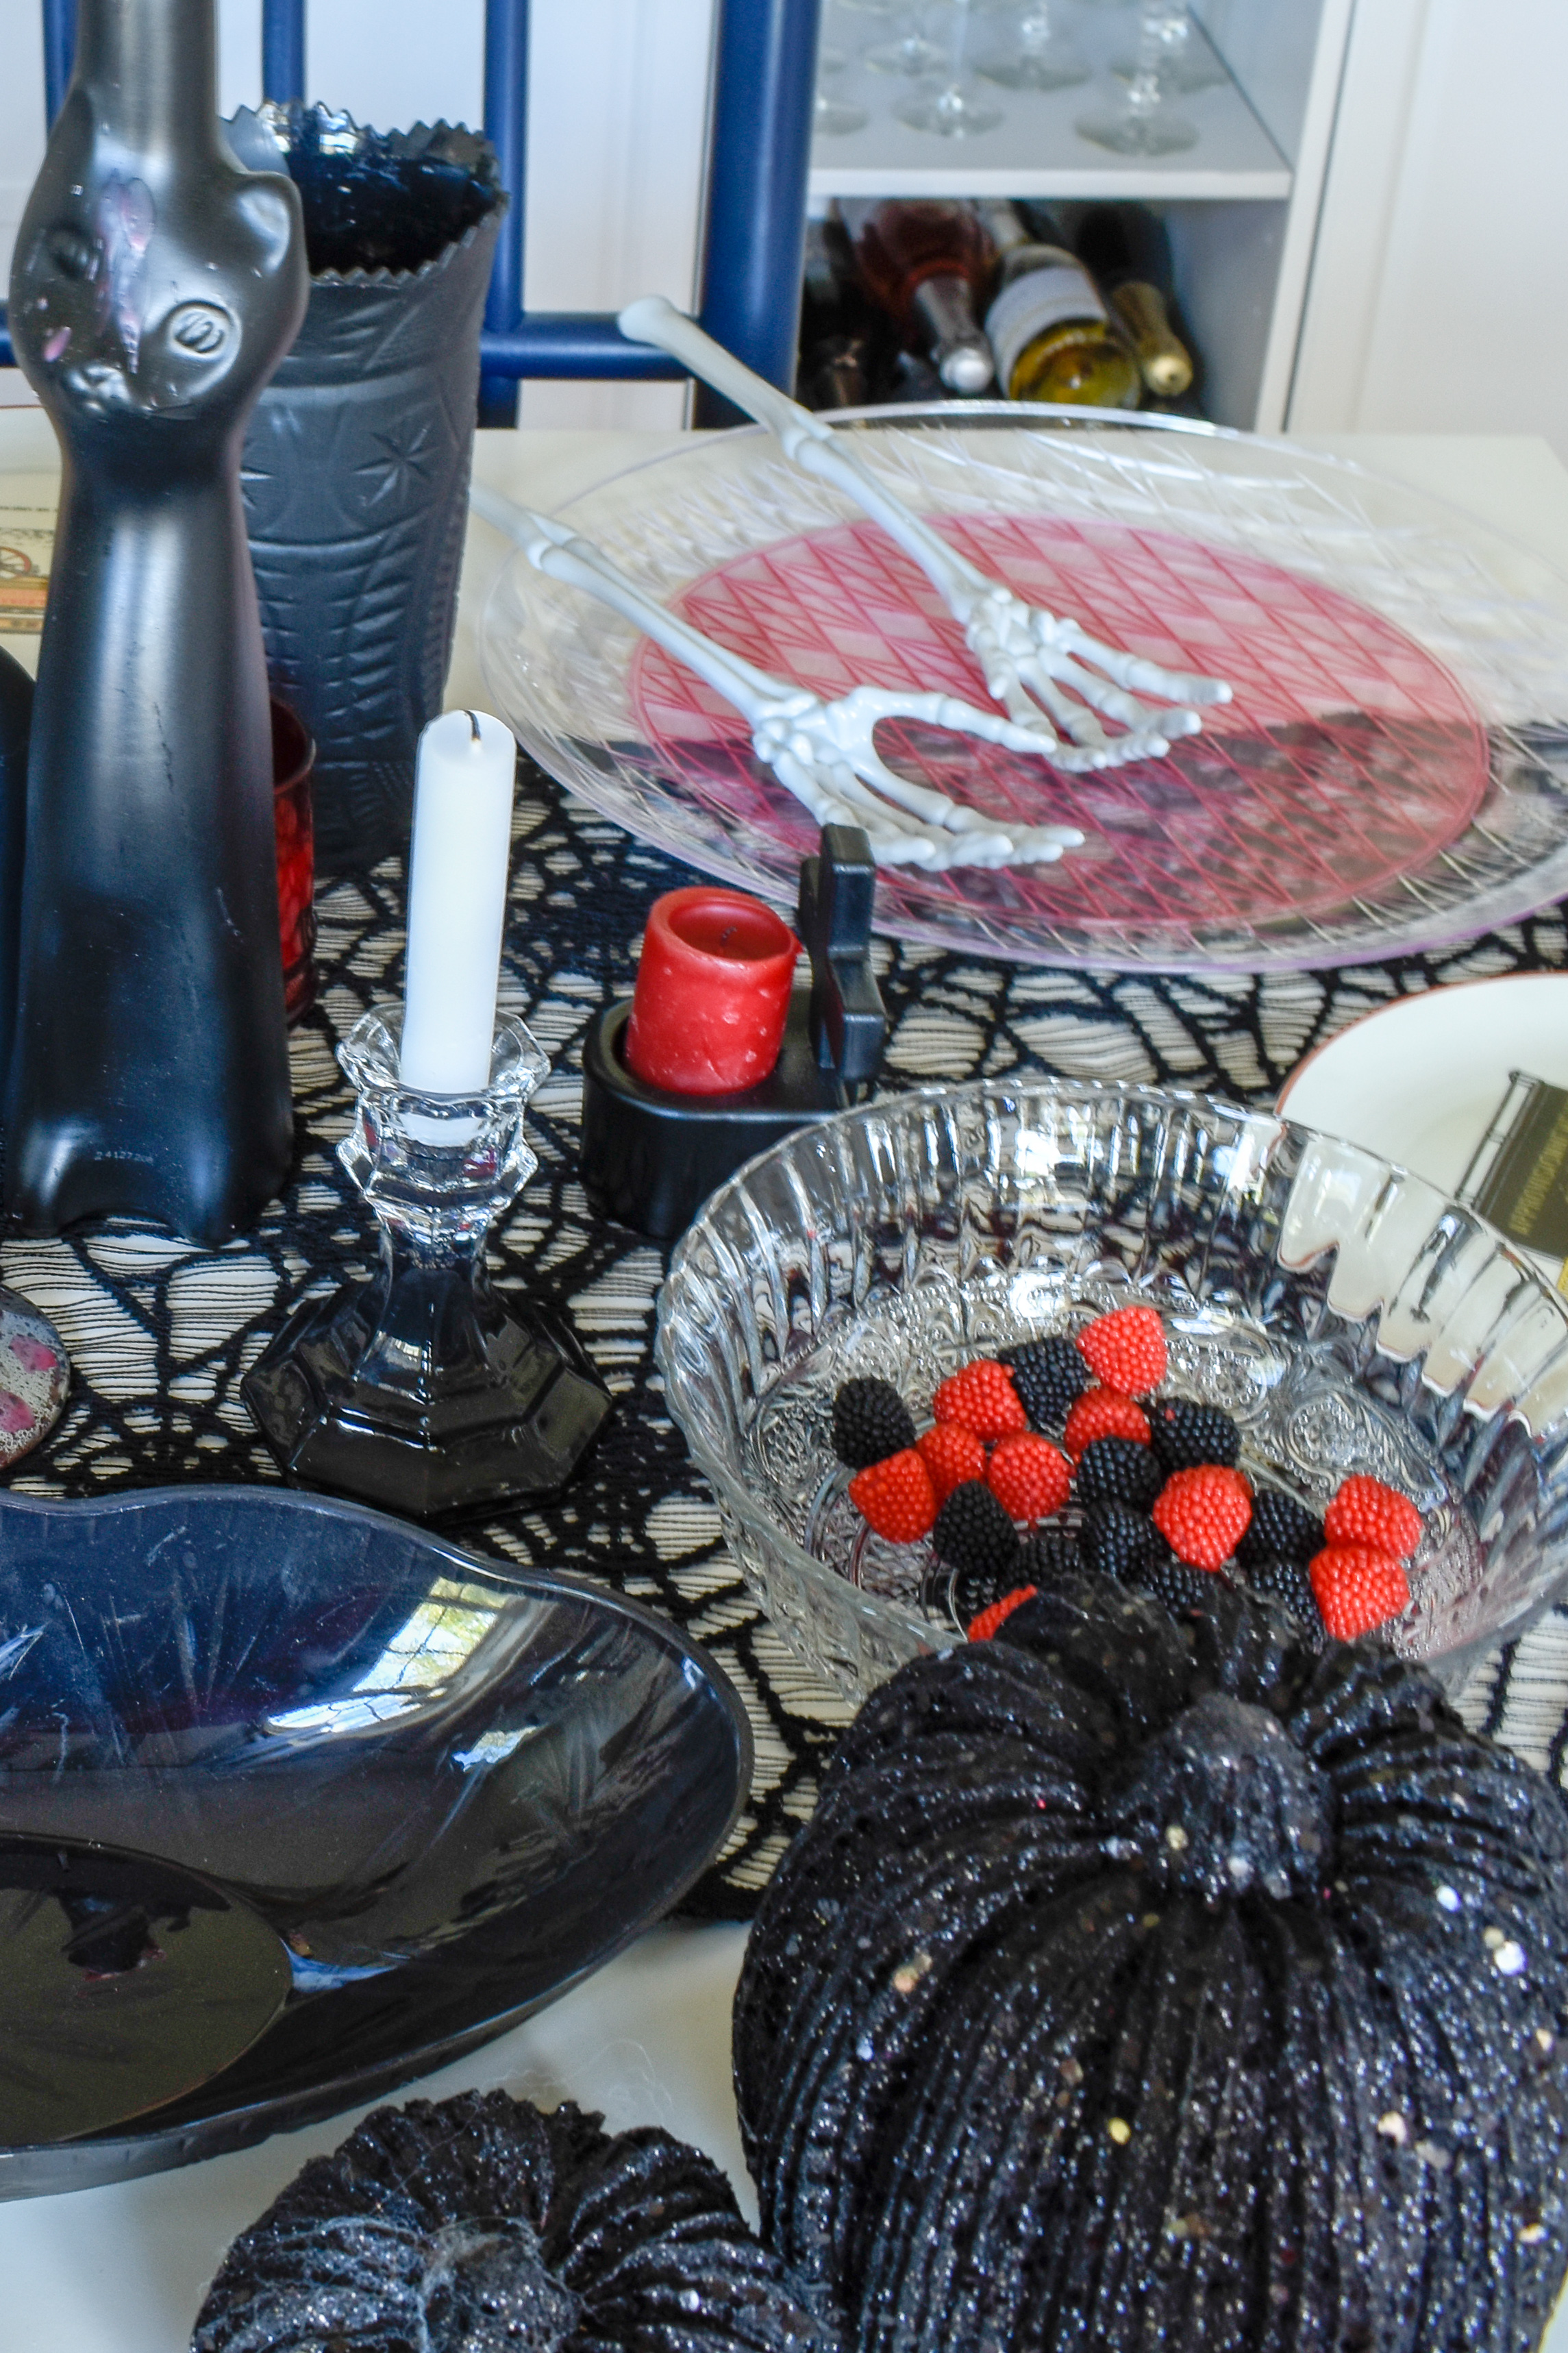 Easy Halloween Party Table Setting - I like to keep it buffet style. Let people walk around. Adding black and red accents makes this neutral but spooky.